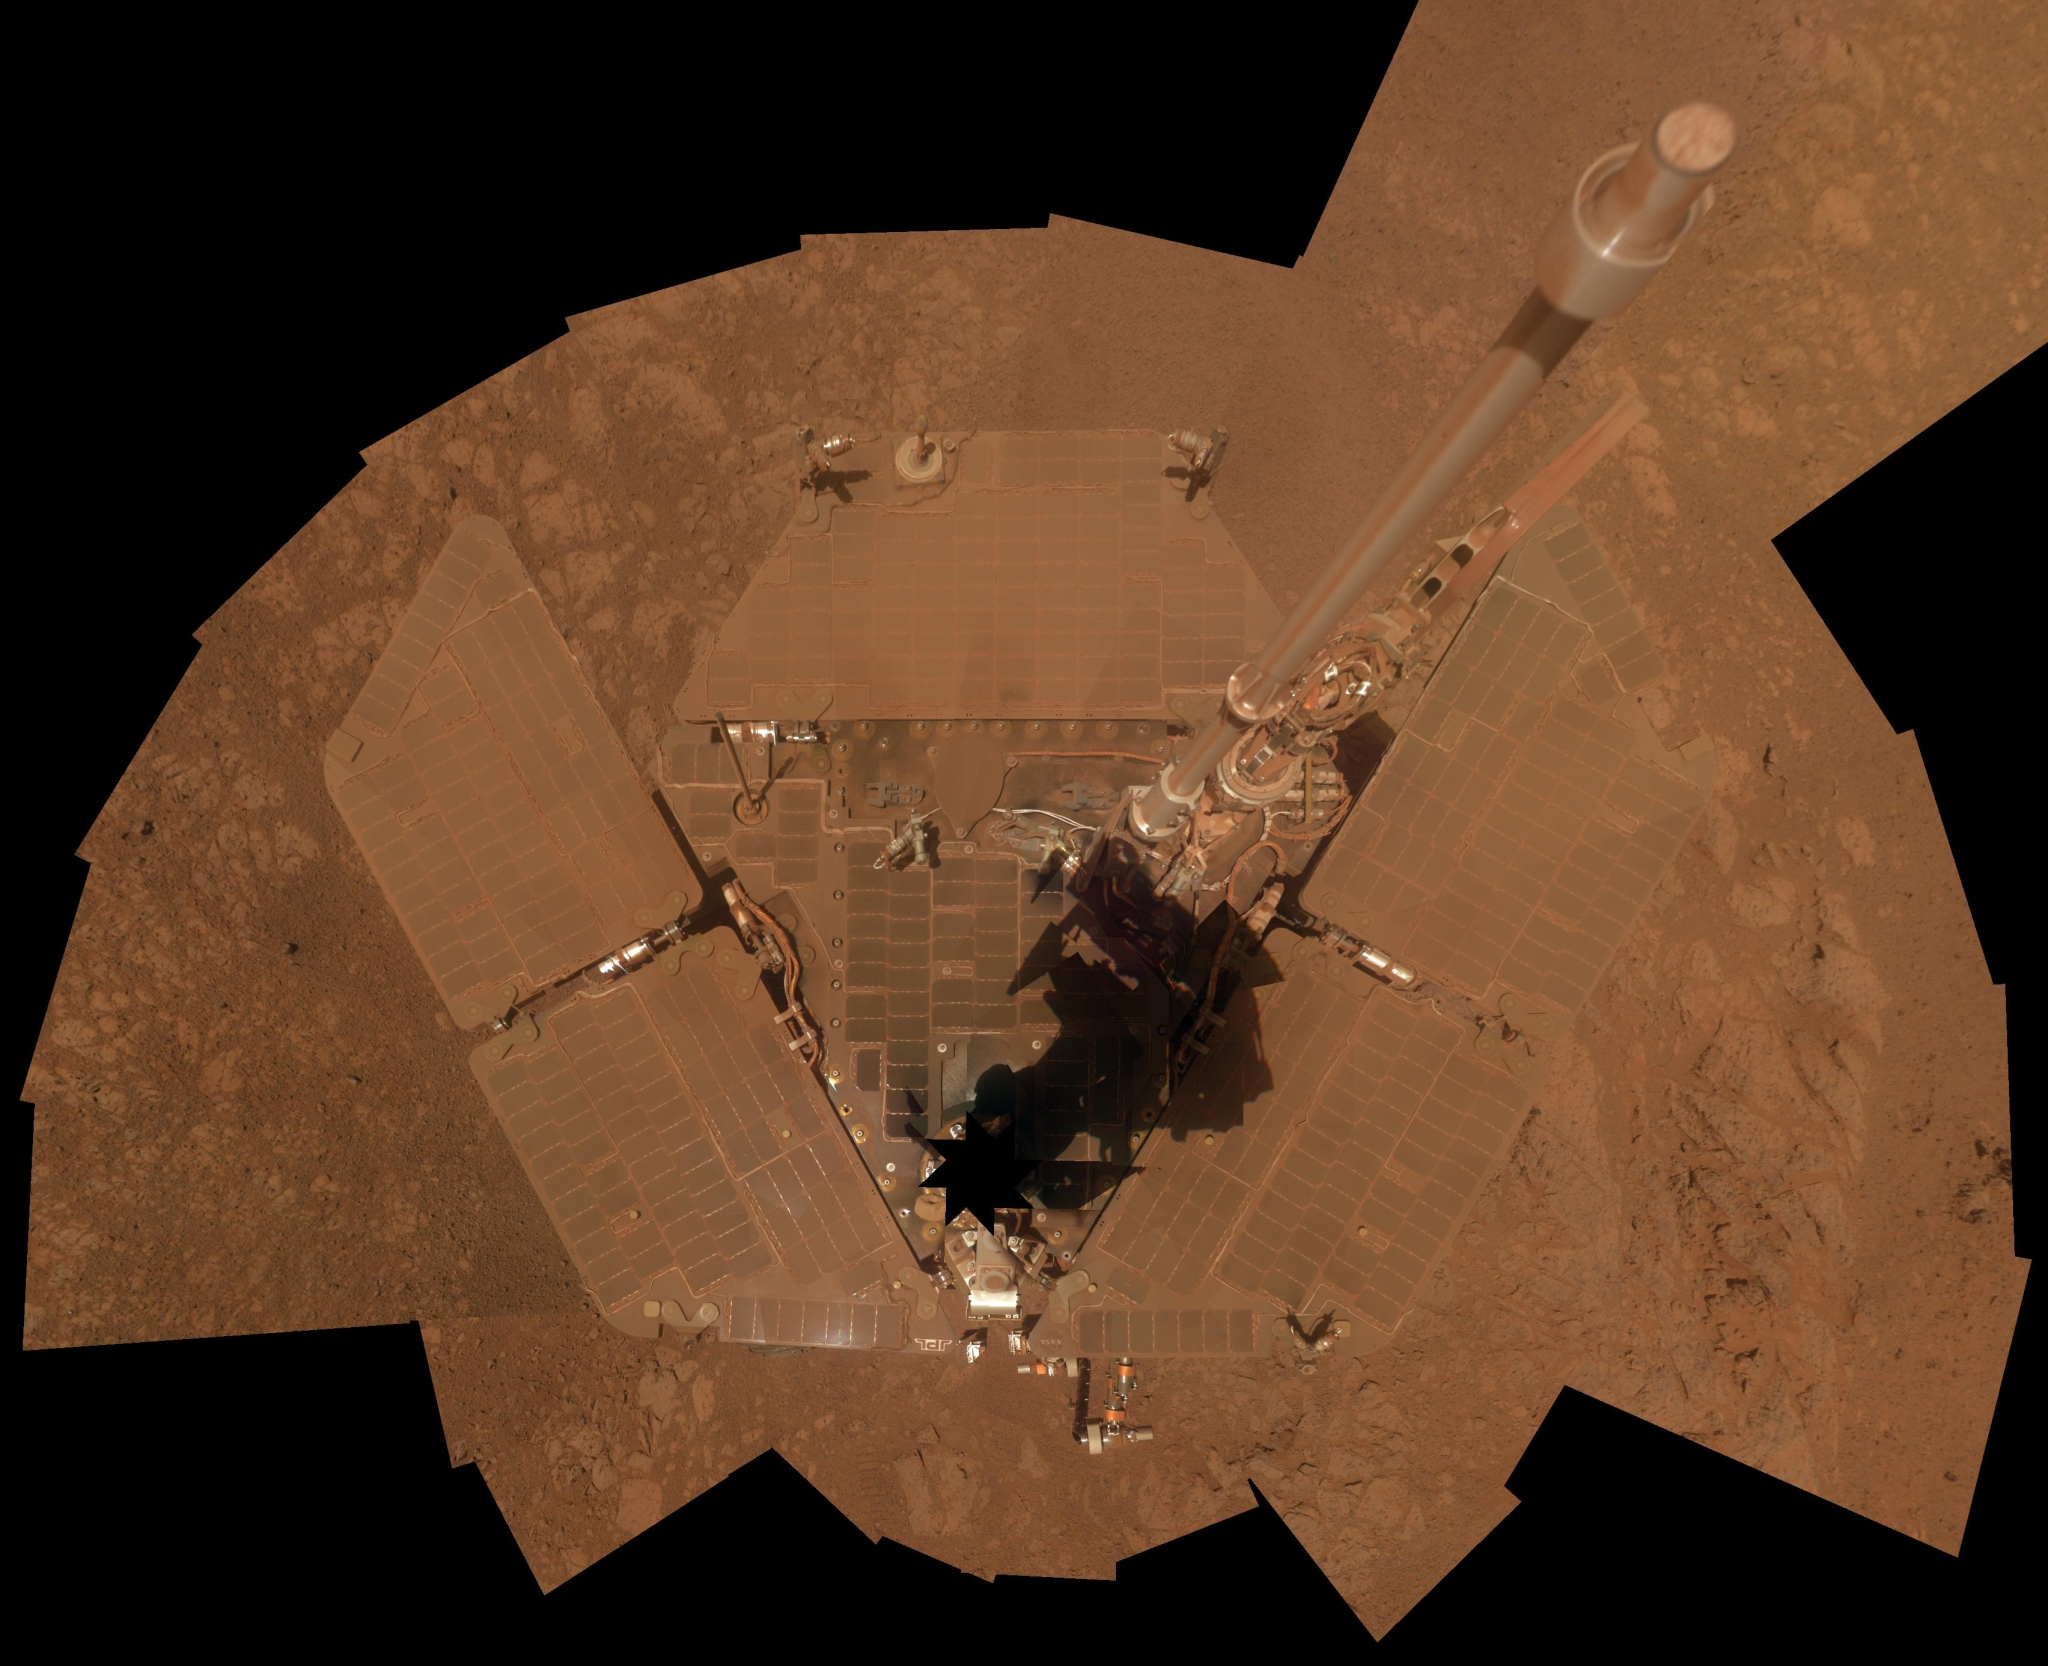 Opportunity s Decade on Mars